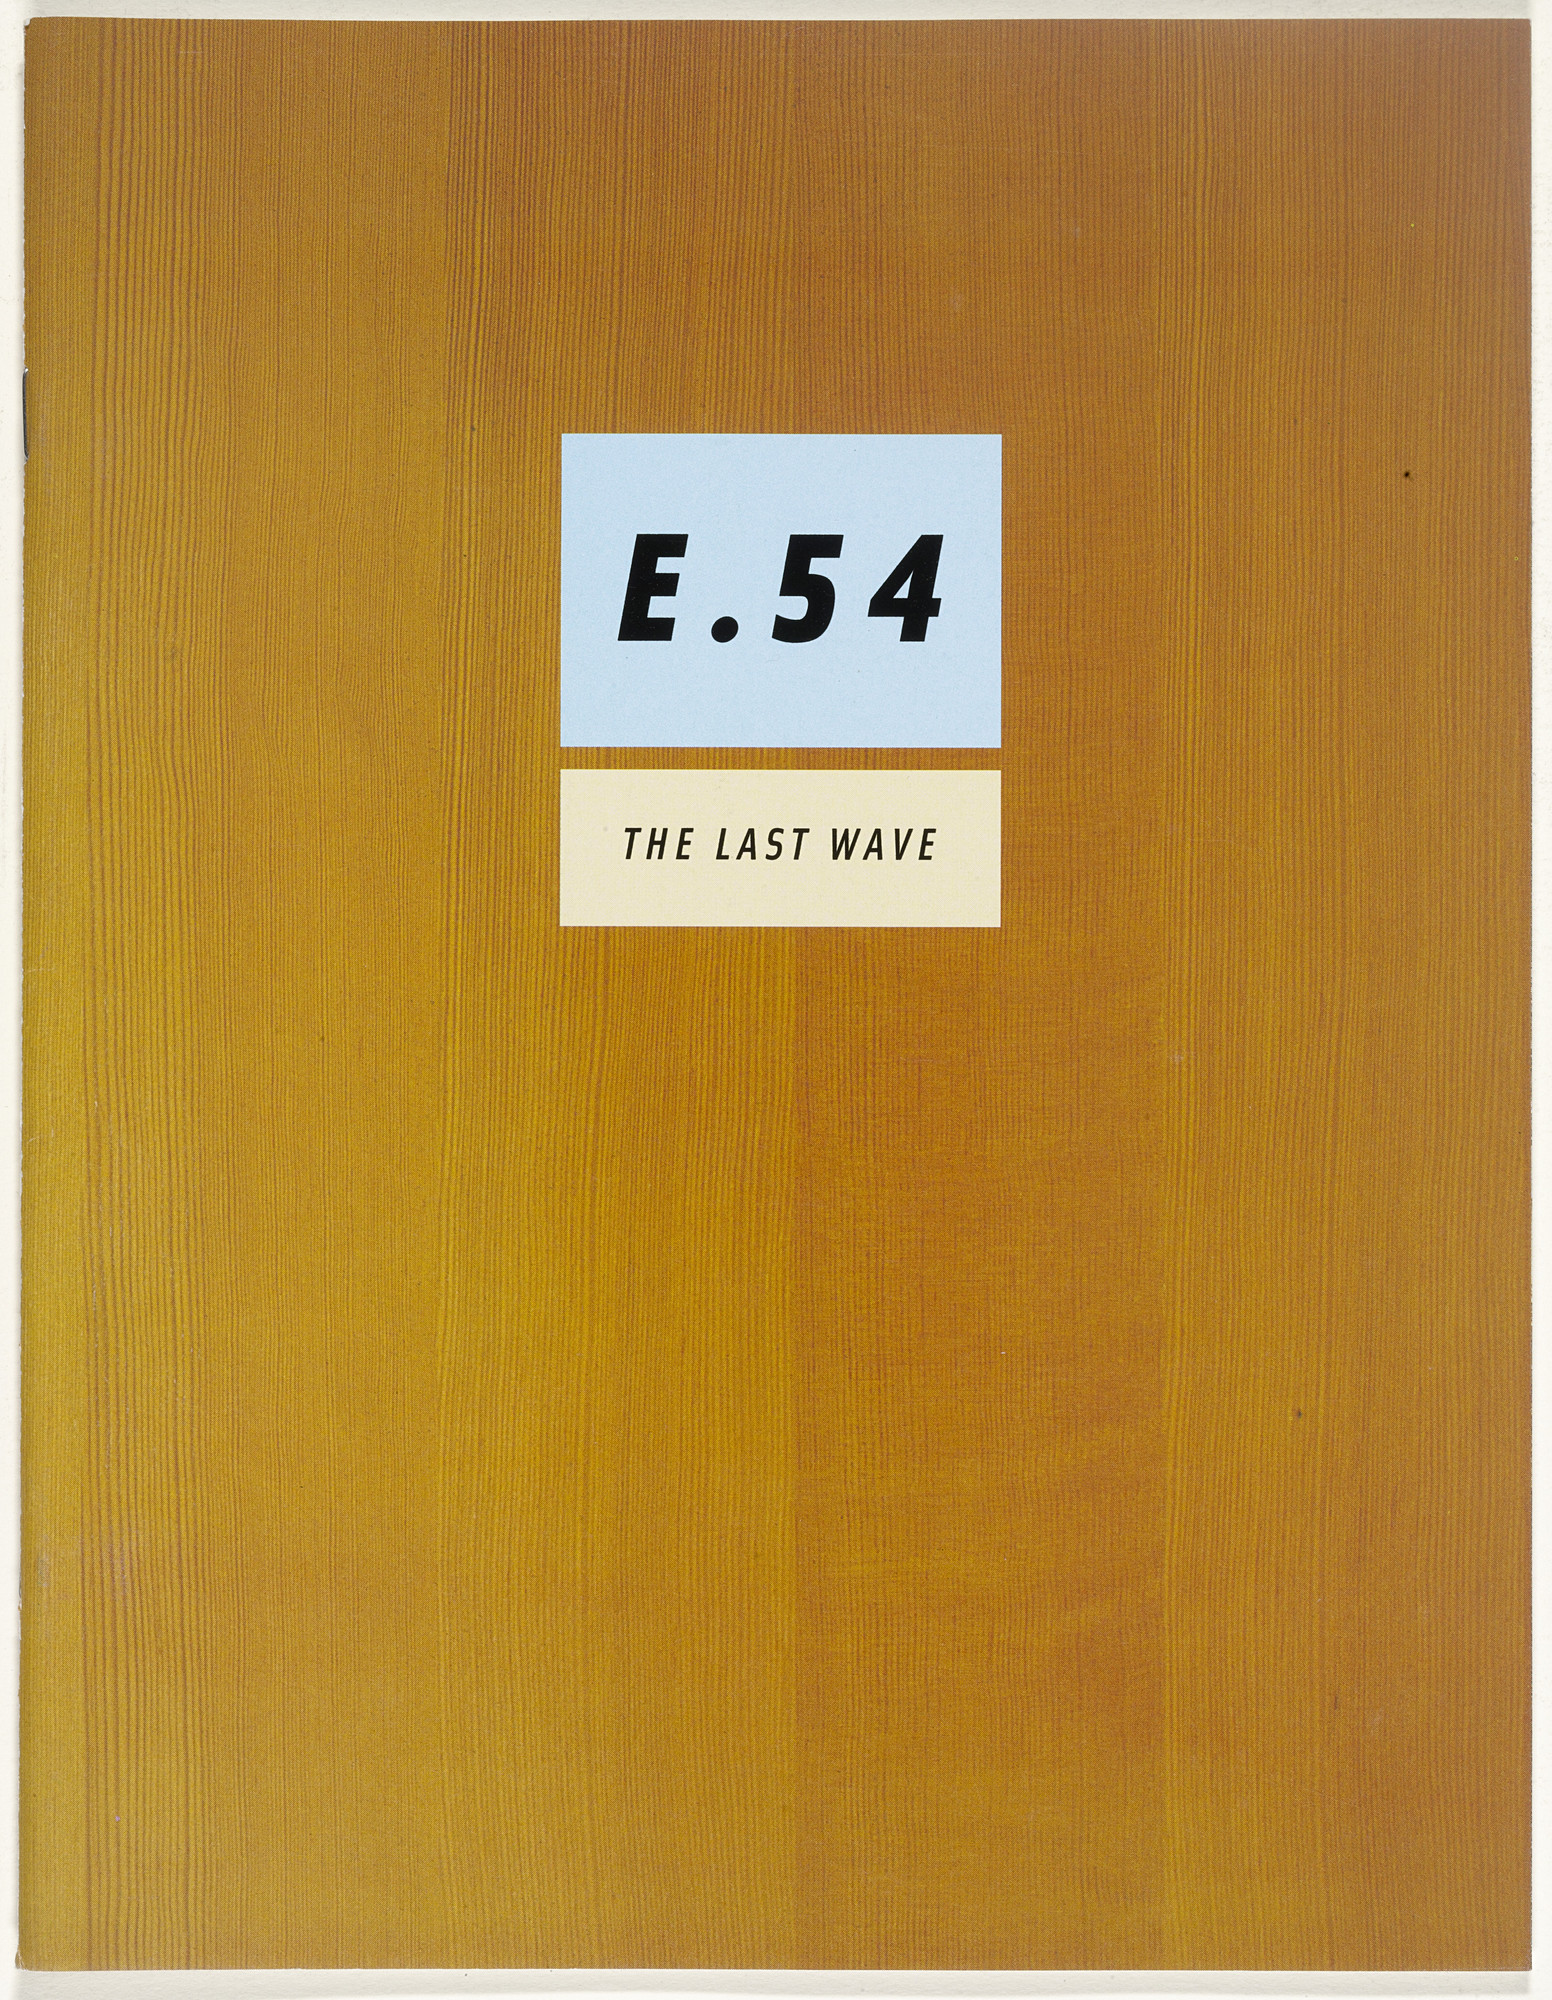 Emigre Inc., Rudy VanderLans, Zuzana Licko. Emigre 54, The Last Wave. 2000